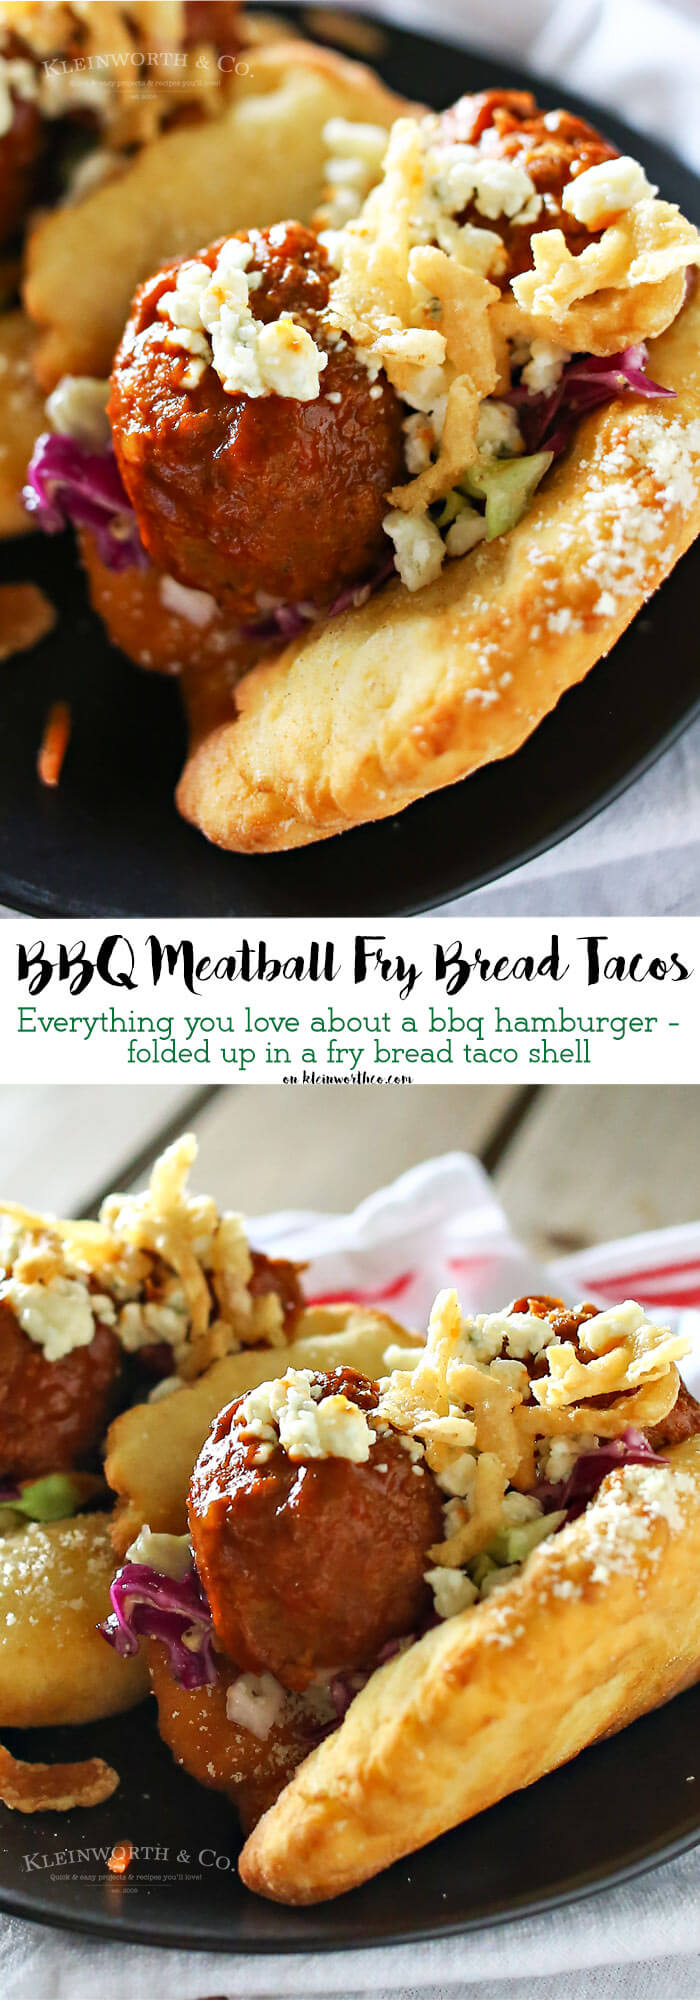 BBQ Meatball Fry Bread Tacos